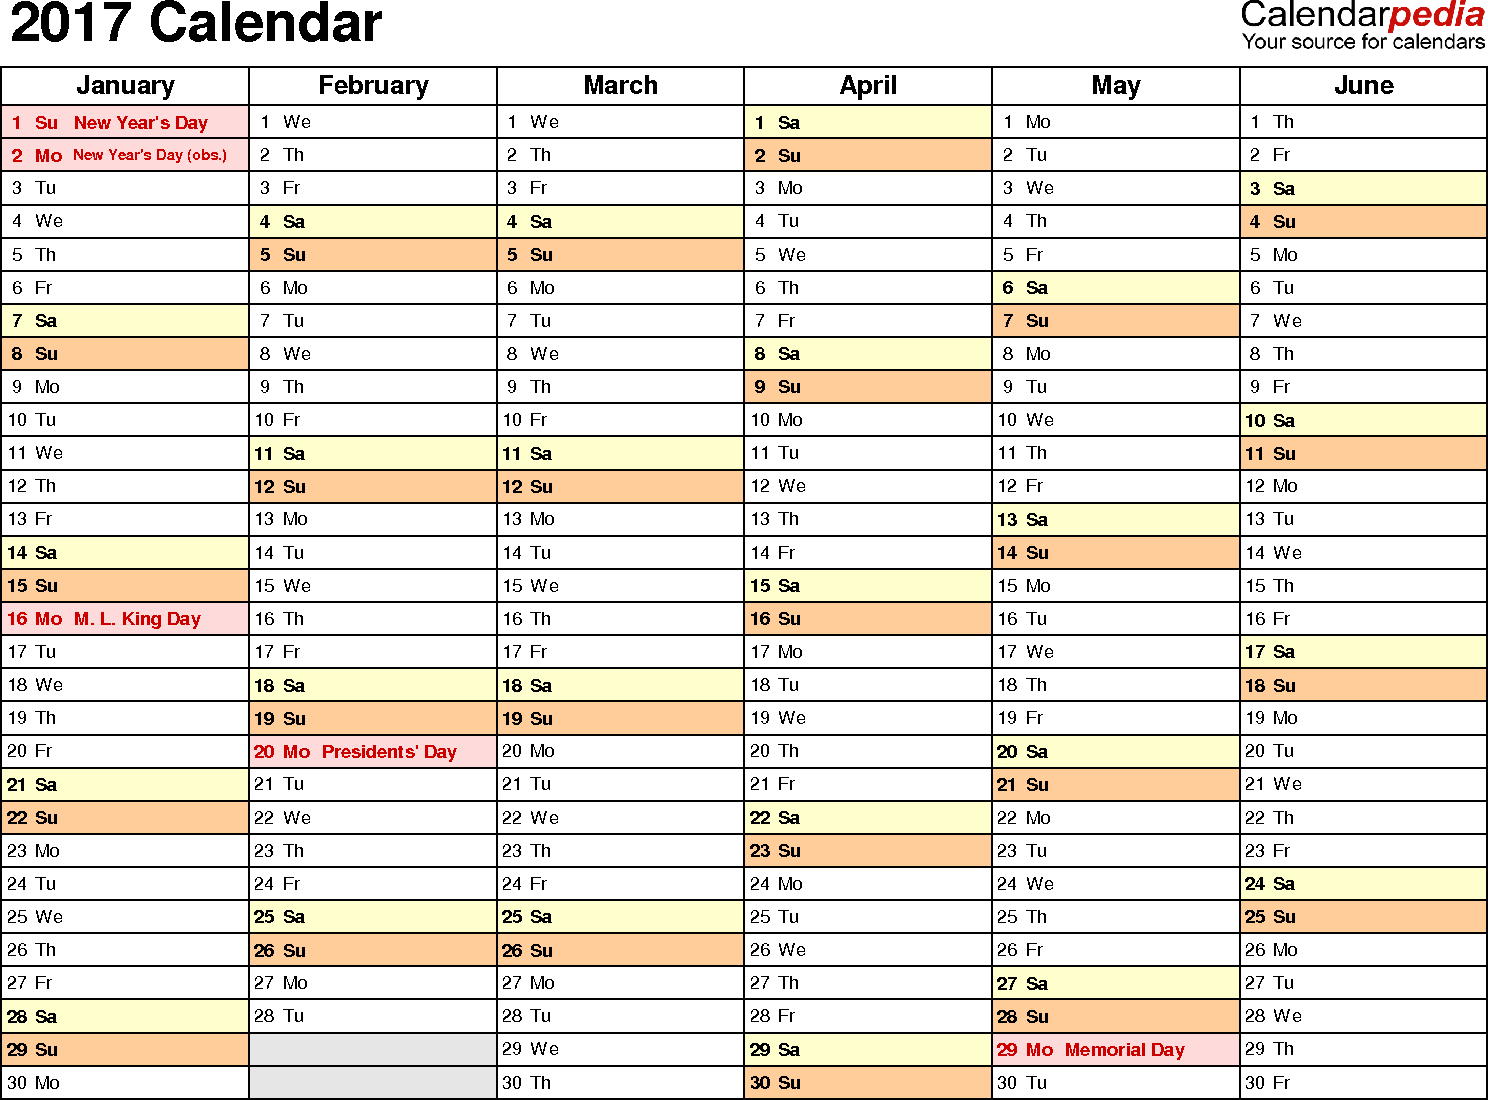 Ediblewildsus  Surprising  Calendar  Download  Free Printable Excel Templates Xls With Lovable Template   Calendar For Excel Months Horizontally  Pages Landscape Orientation With Divine Excel Unique Values Also Absolute Cell Reference Excel In Addition Unprotect Excel And Excel String Functions As Well As Roundup Excel Additionally Online Excel Training From Calendarpediacom With Ediblewildsus  Lovable  Calendar  Download  Free Printable Excel Templates Xls With Divine Template   Calendar For Excel Months Horizontally  Pages Landscape Orientation And Surprising Excel Unique Values Also Absolute Cell Reference Excel In Addition Unprotect Excel From Calendarpediacom